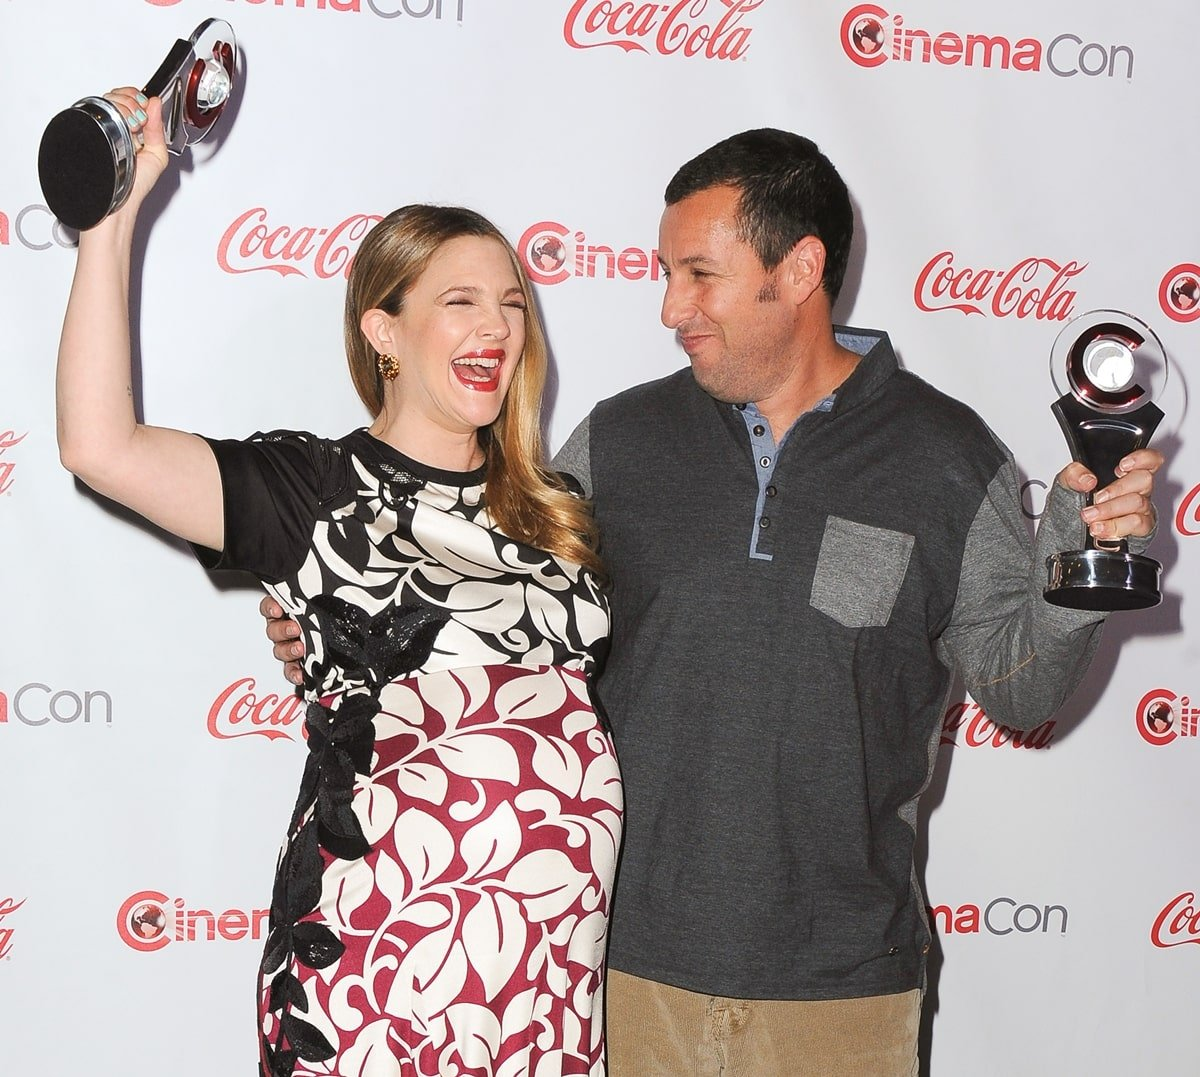 Drew Barrymore and Adam Sandler picked up the Female and Male Star of the Year awards for their romantic comedy Blended at the 2014 CinemaCon Big Screen Achievement Awards